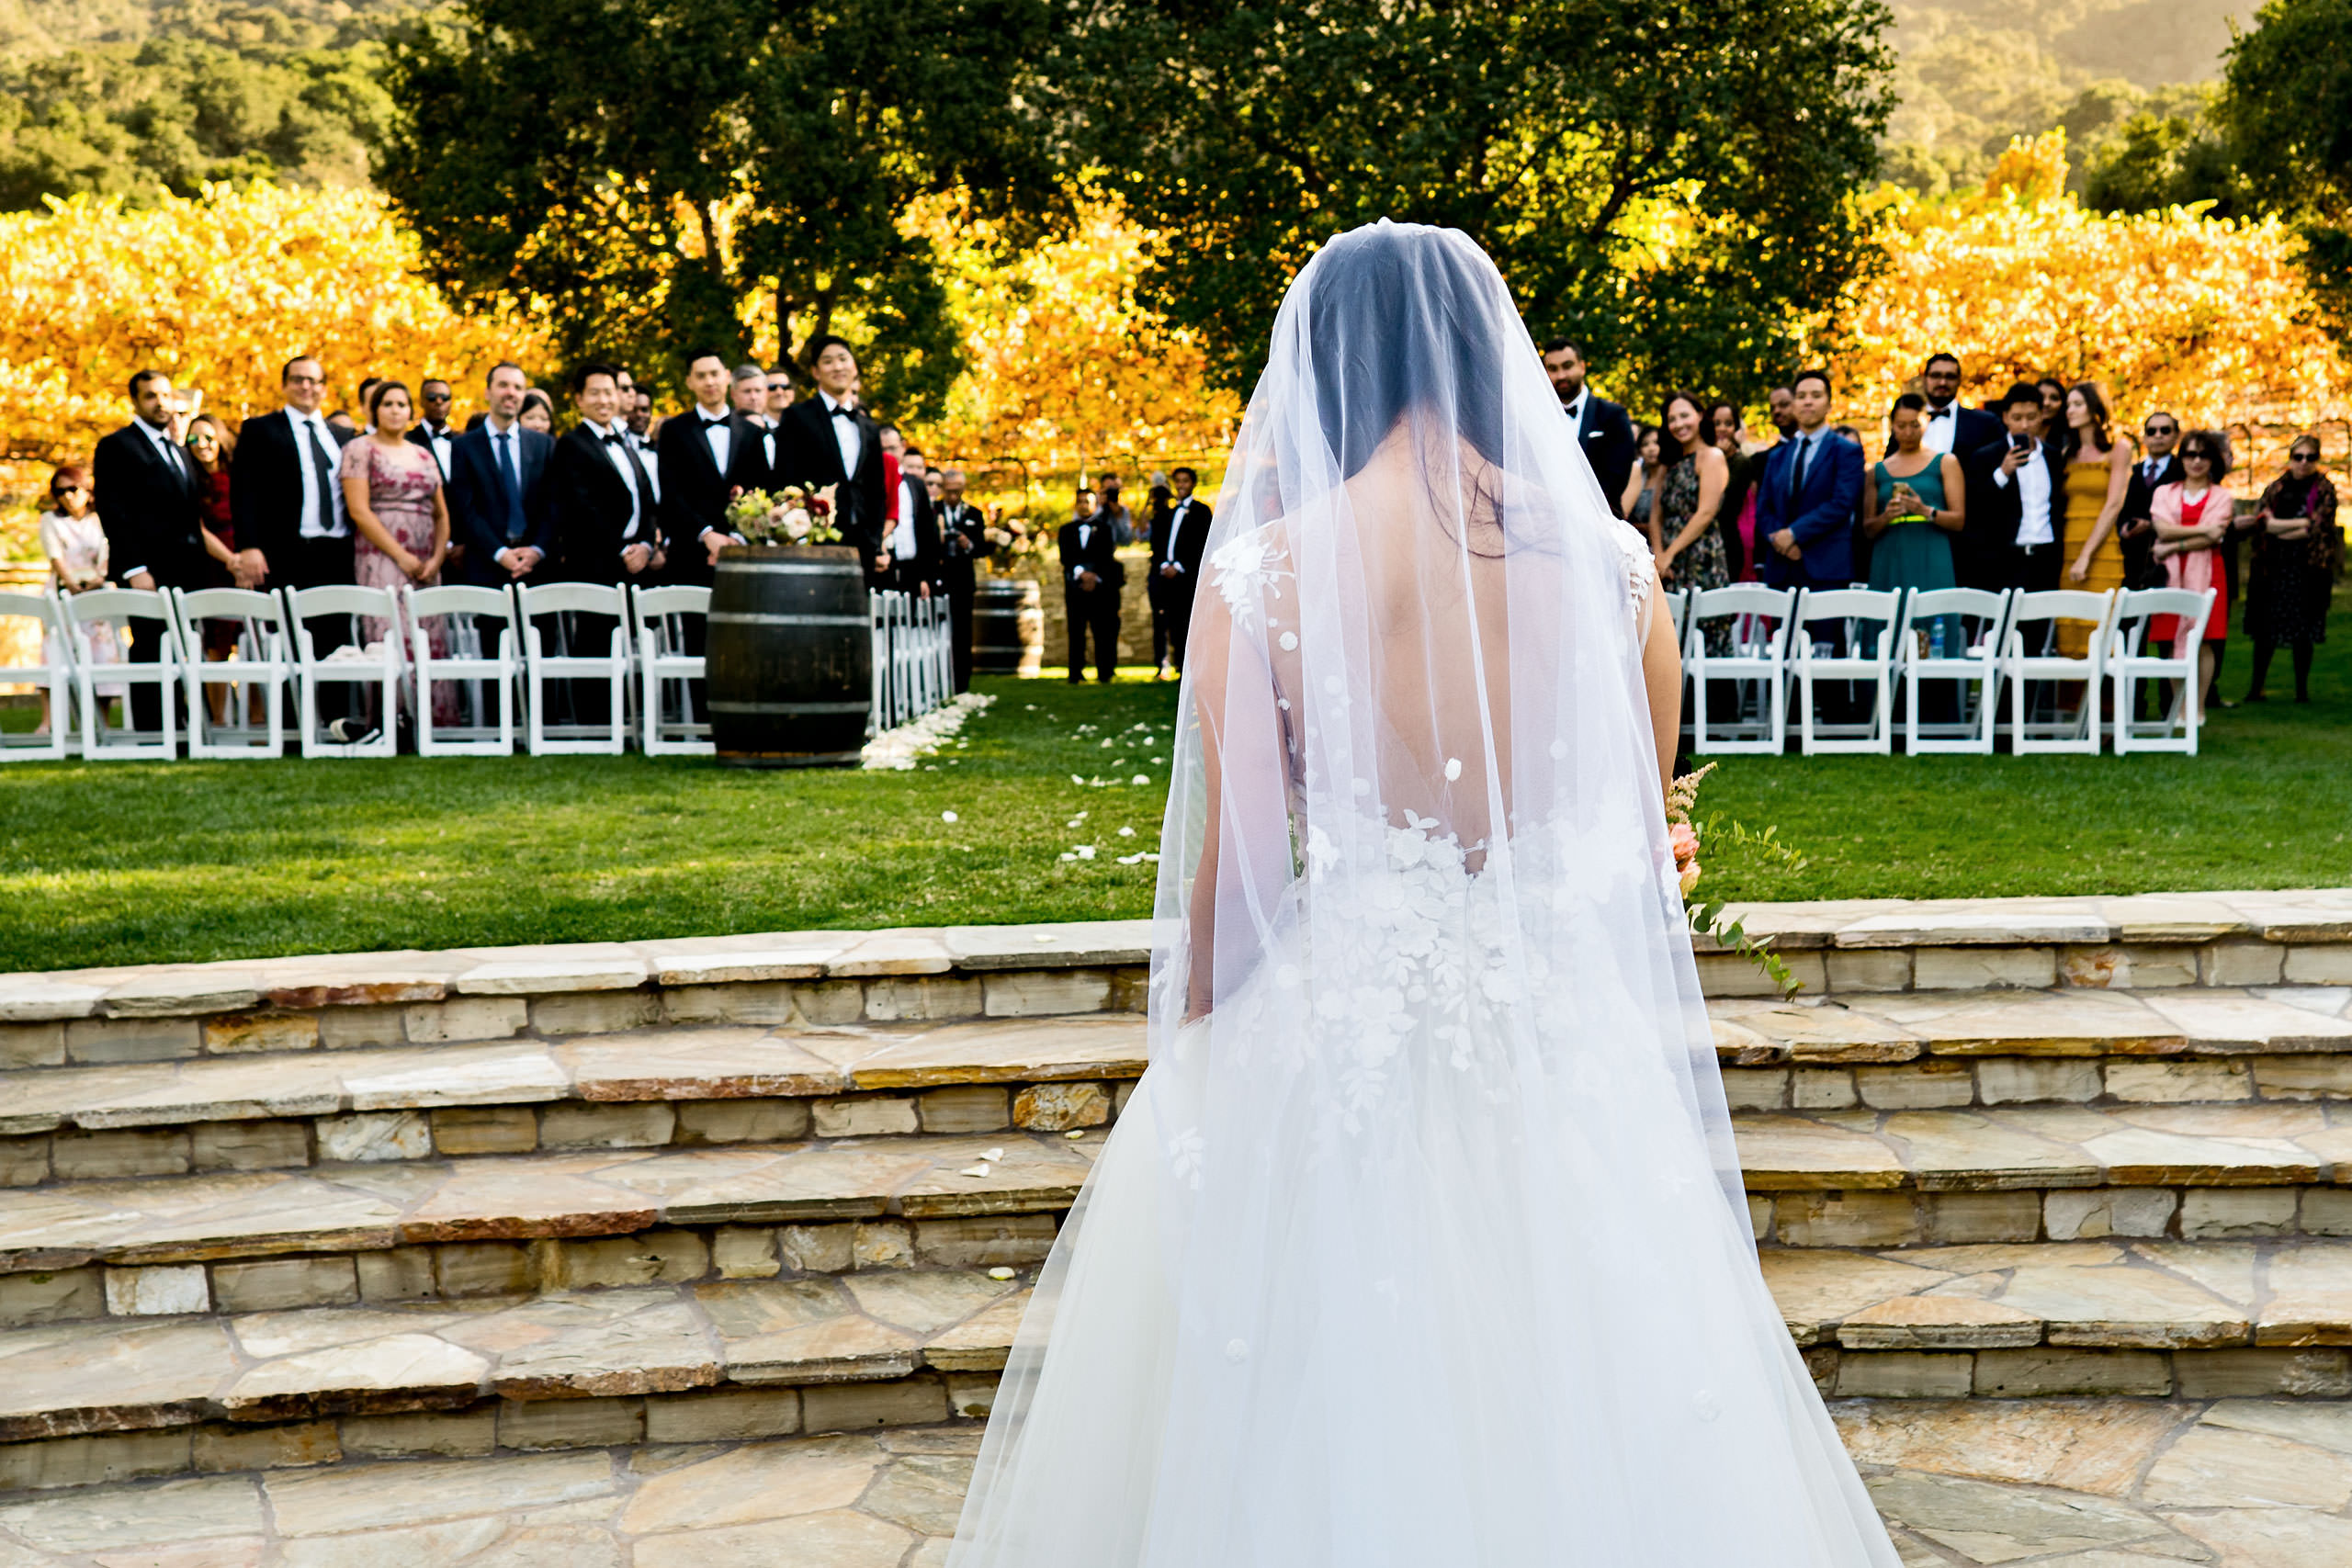 Bride walking down the aisle by Carmel Valley Ranch Wedding Photographer Sean LeBlanc